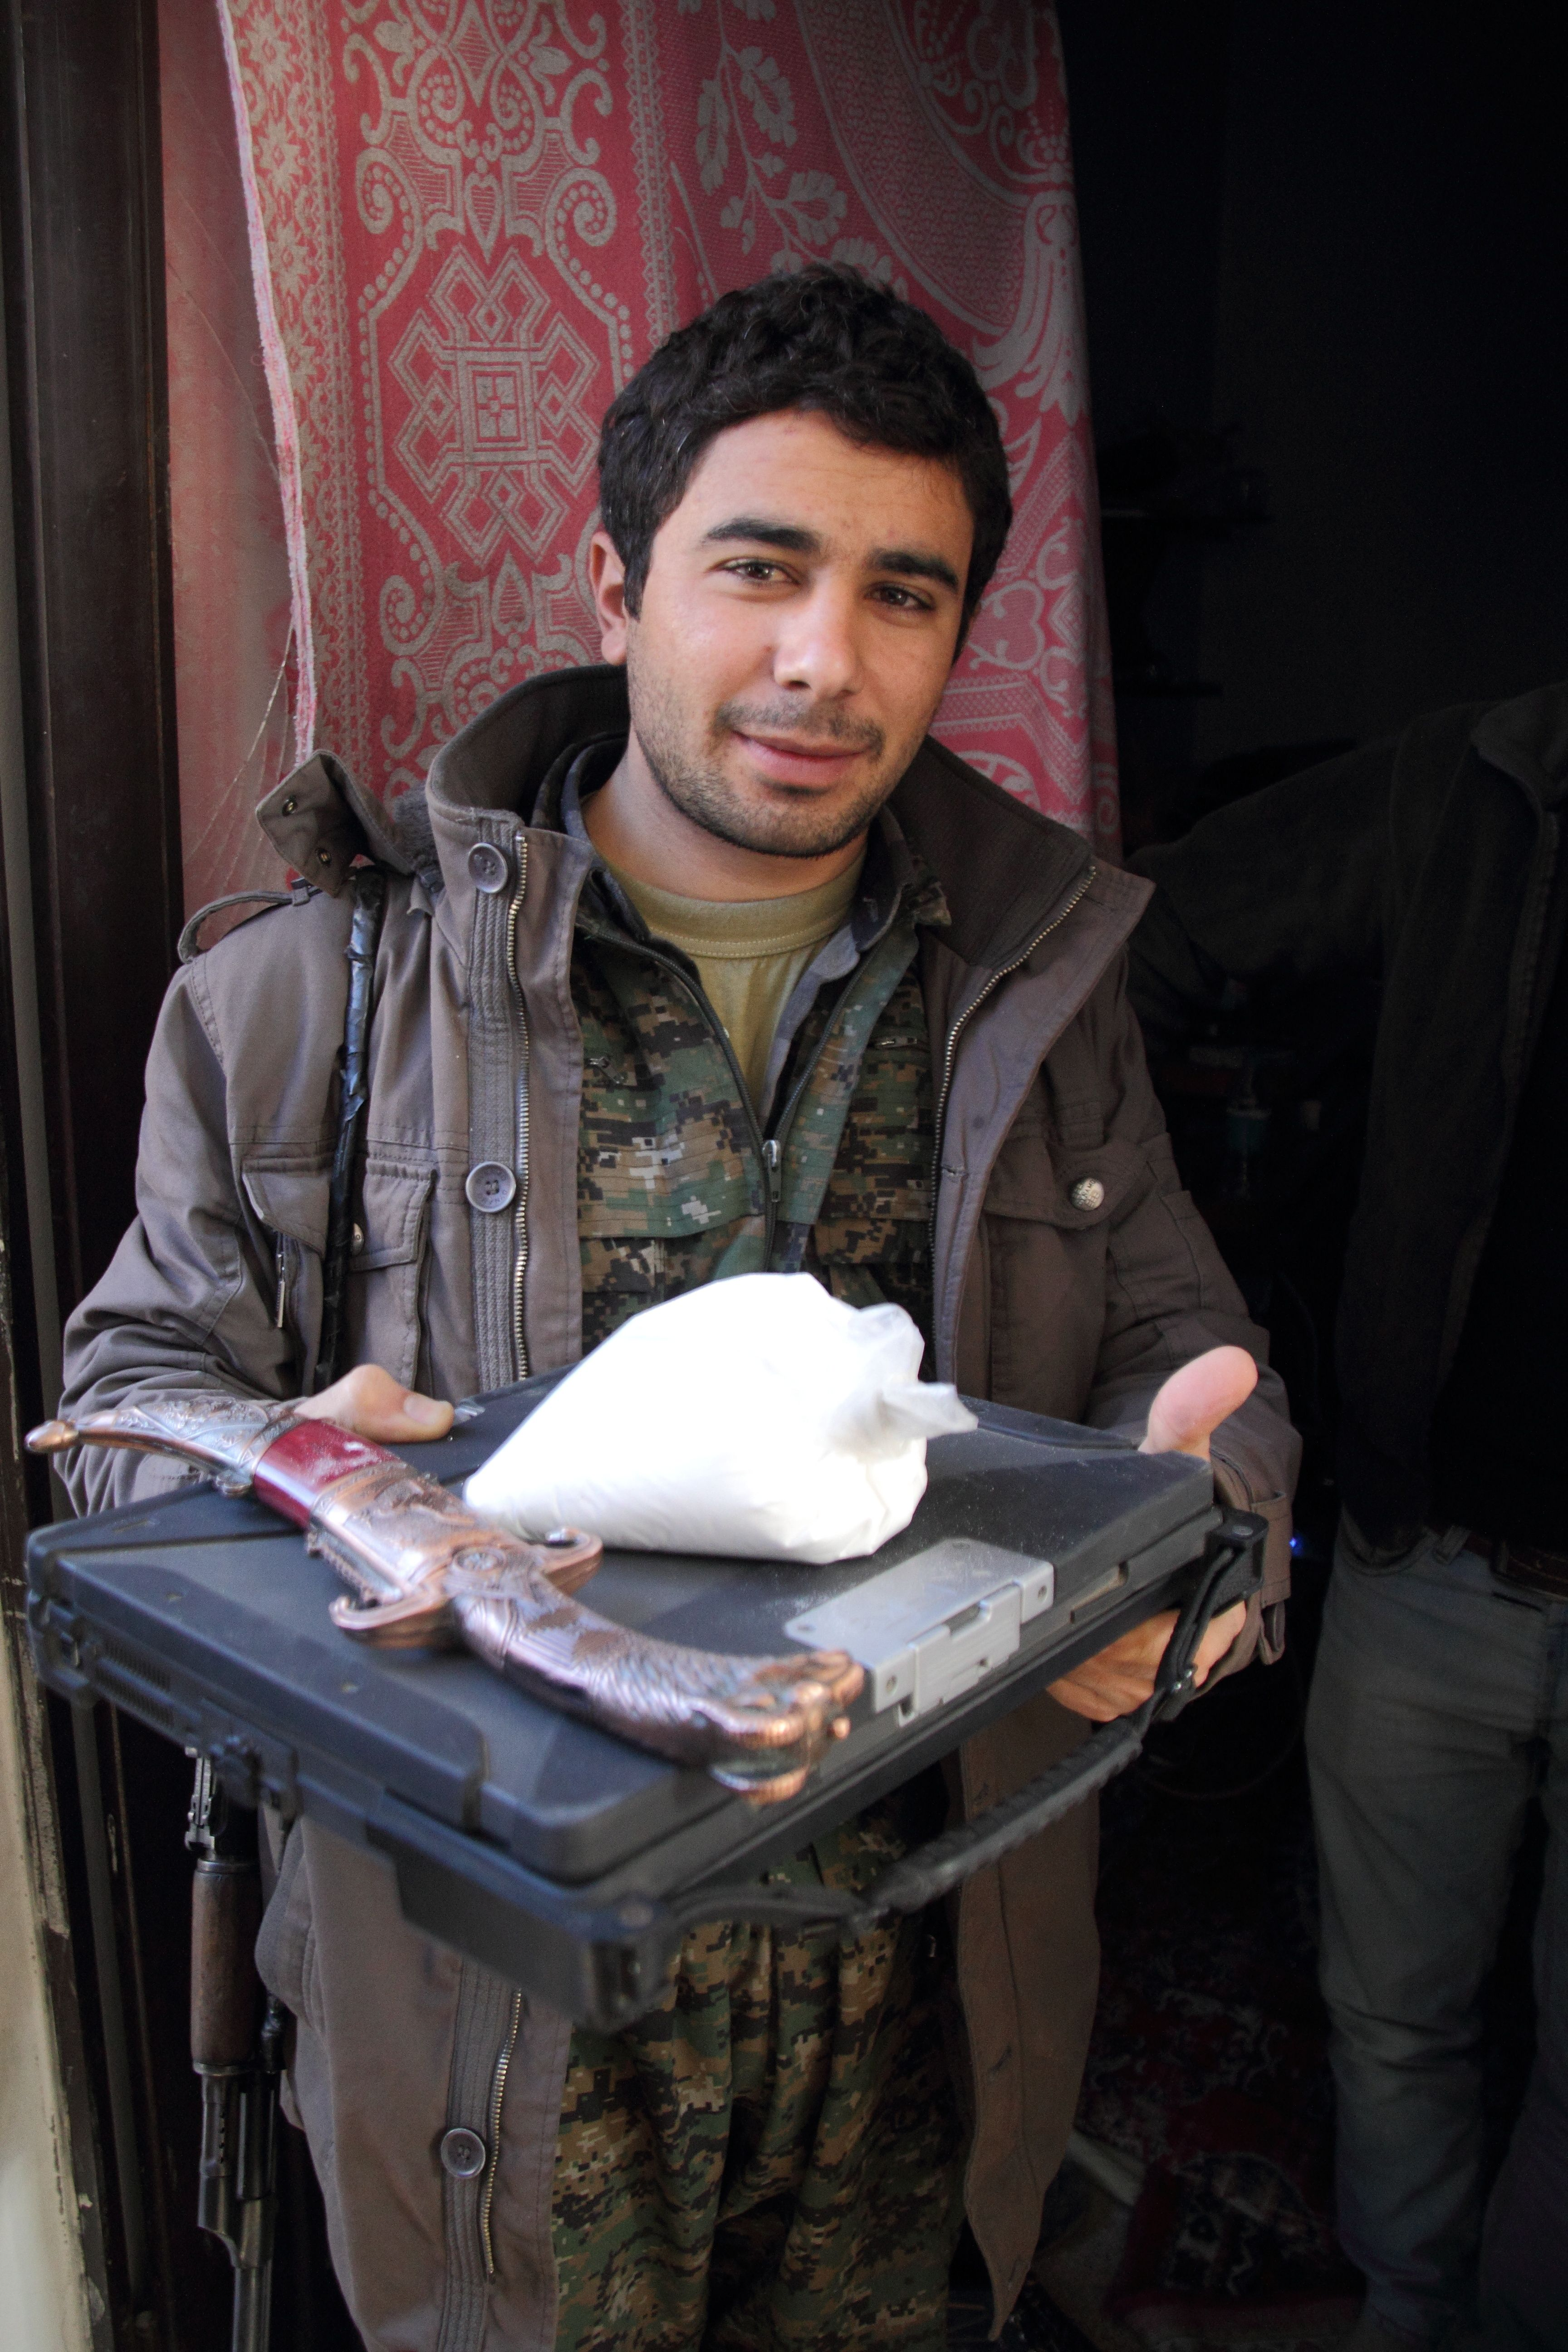 exclusive-video-shows-cocaine-allegedly-found-at-home-of-islamic-state-leader-in-kobane-1420474391 (1)